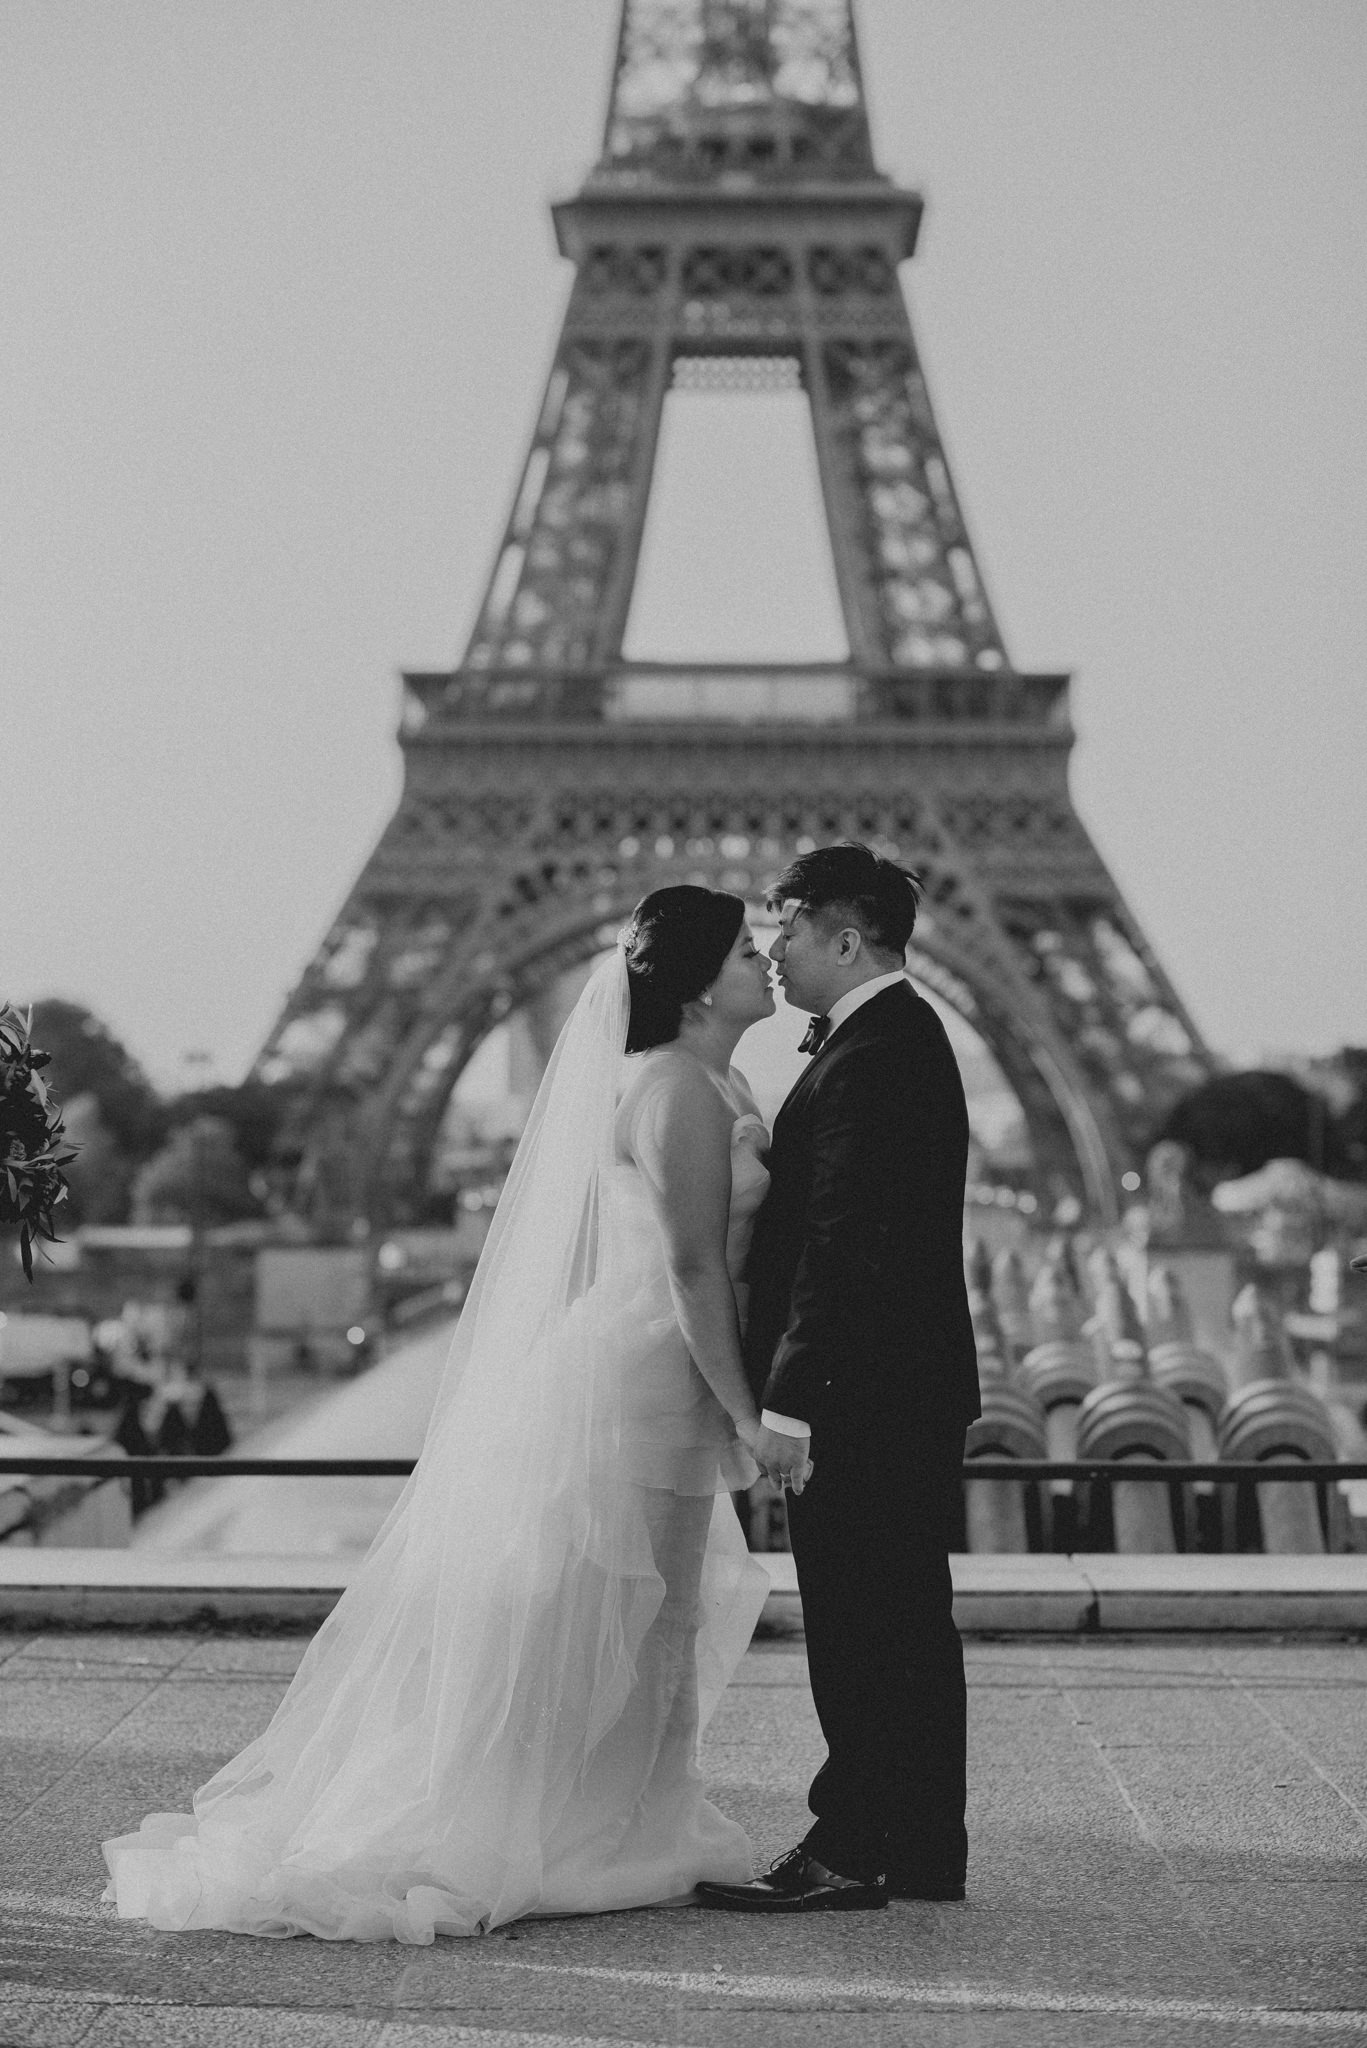 Asian bride and groom kiss in front of the Eiffel Tower.